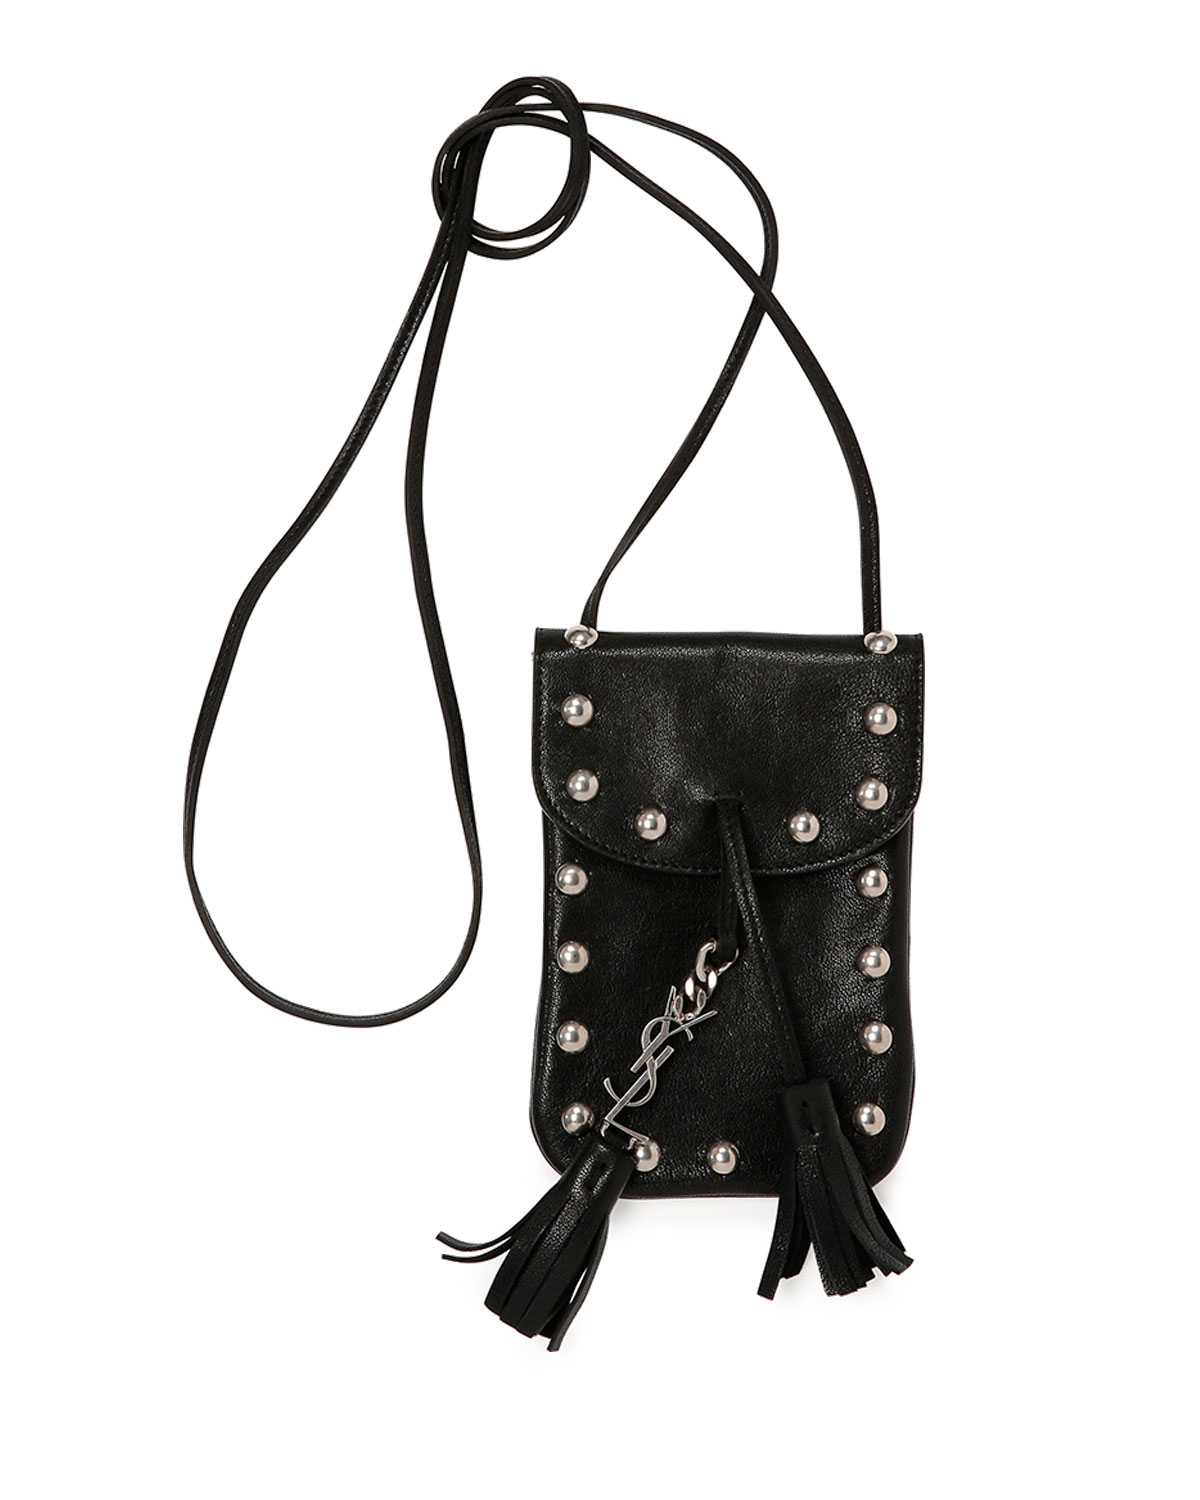 3b43dbb207 Lyst - Saint Laurent Anita Toy Leather Shoulder Bag in Black